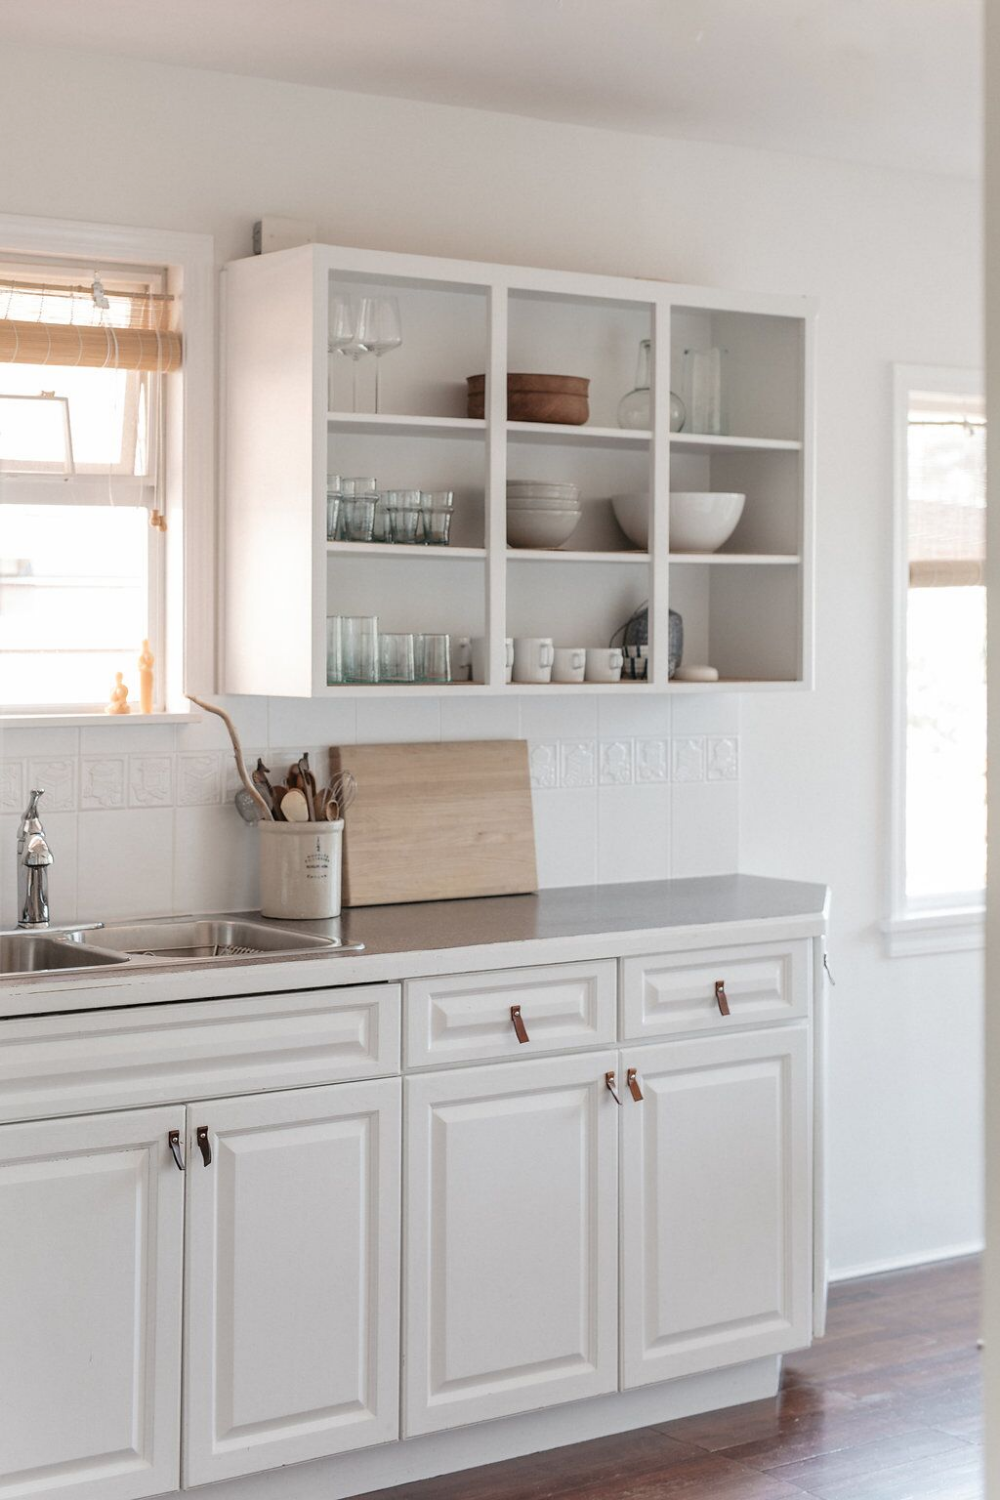 Pale And Interesting An Artful And Economical Renovation In Vancouver Bc Remodelista In 2020 Open Kitchen Cabinets Kitchen Cabinets Kitchen Renovation